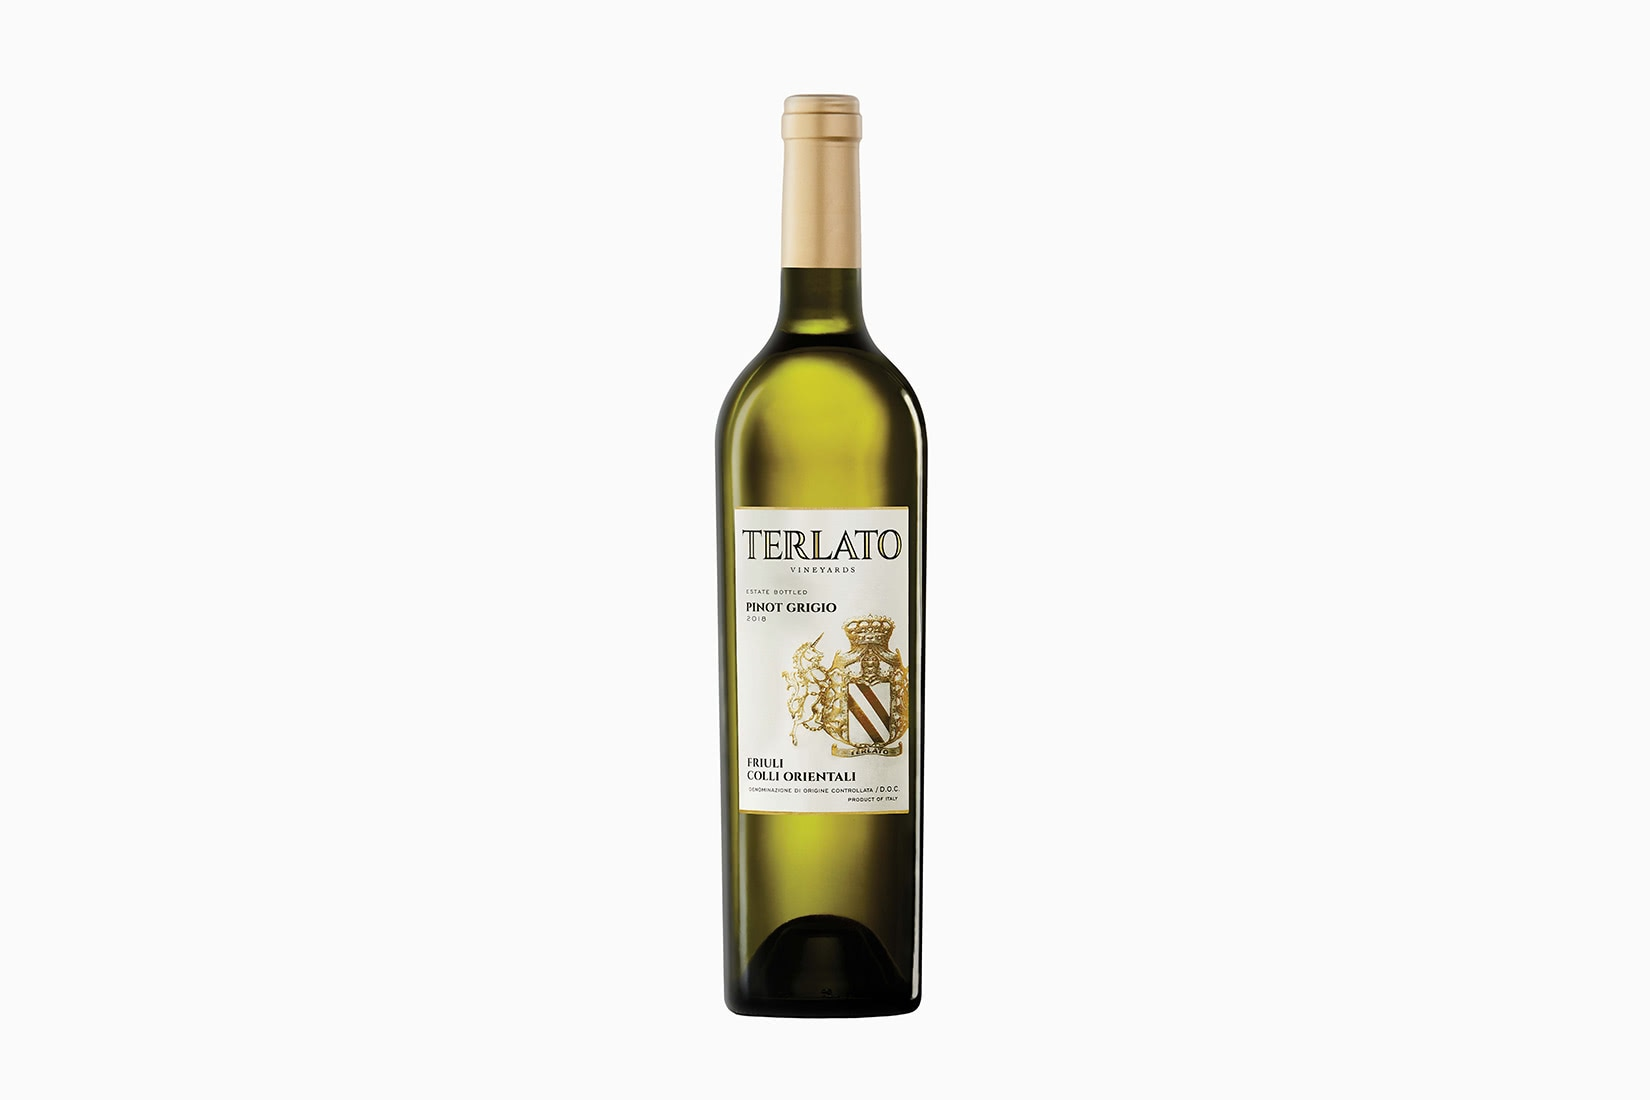 best wine terlato family vineyards friuli pinot grigio - Luxe Digital